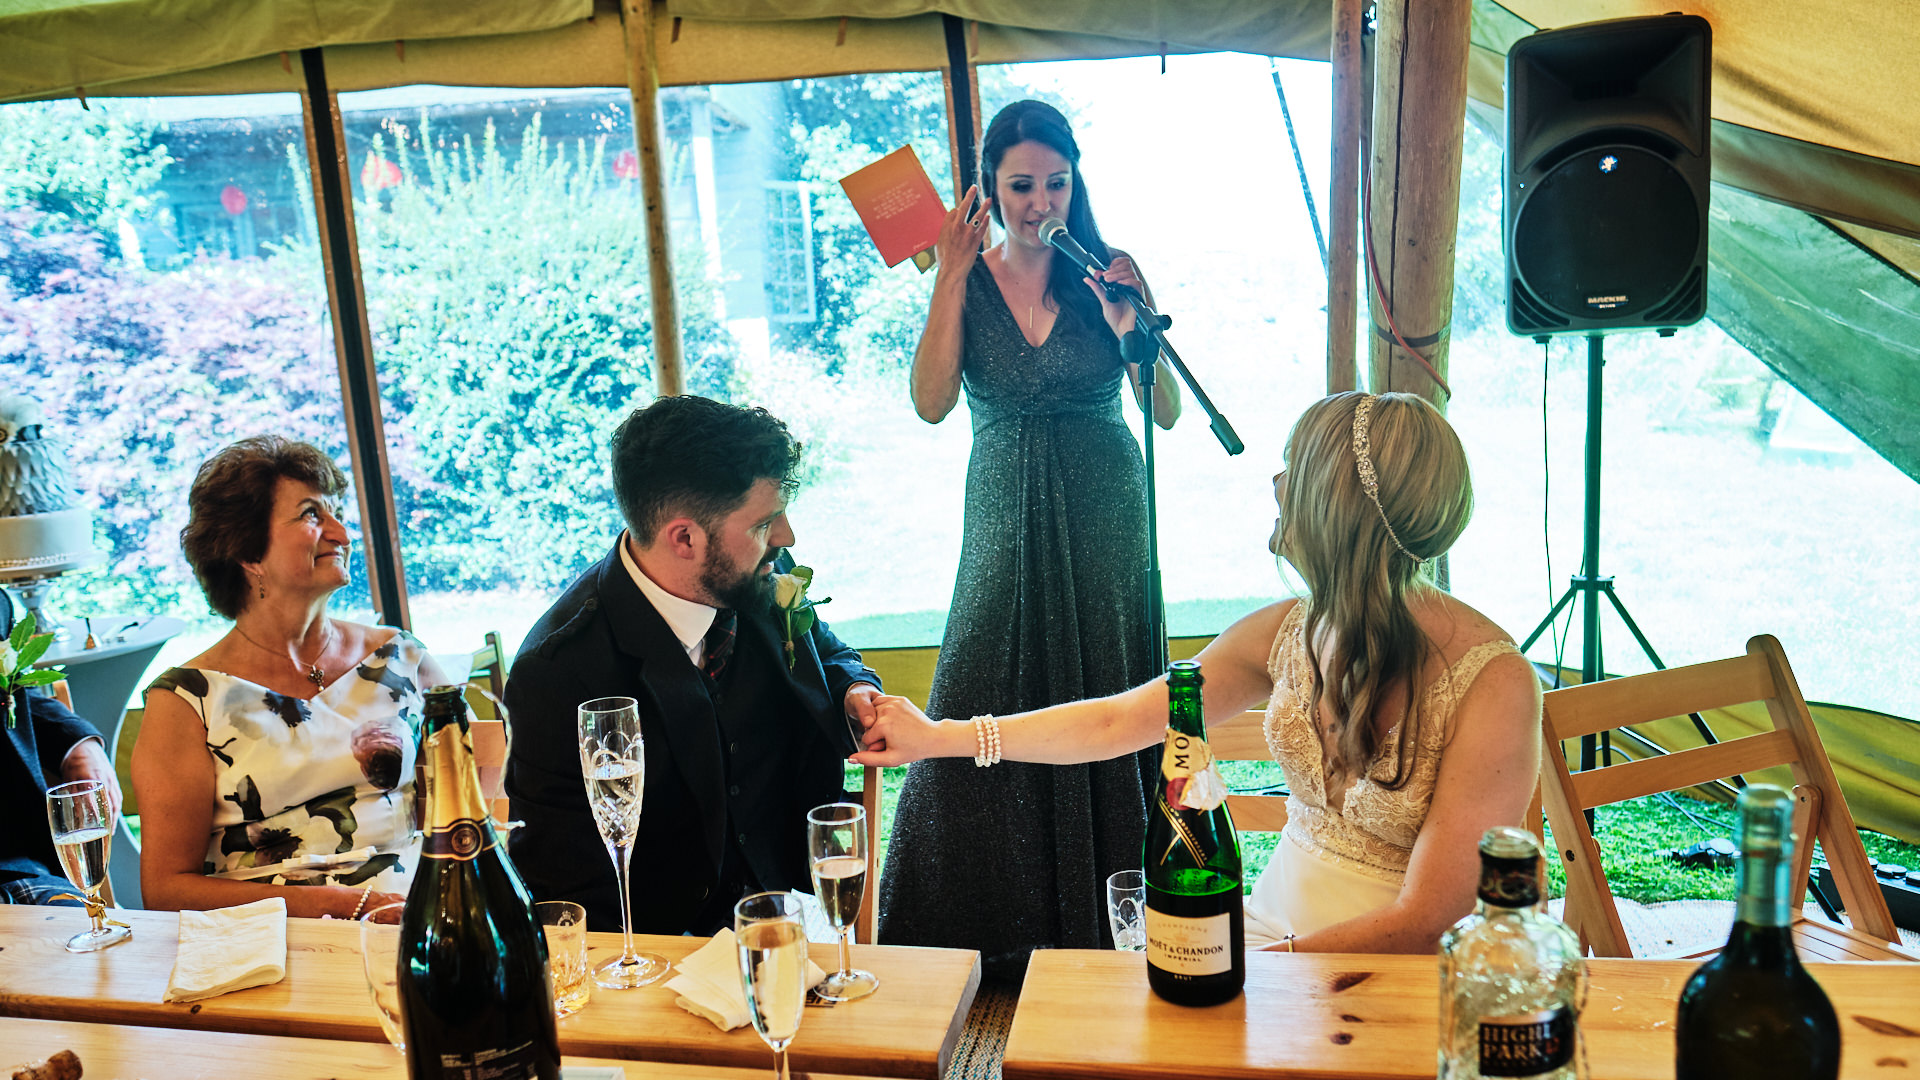 colour photograph of the chief bridesmaid giving an emotional speech at a wedding while the wedding party are in tears